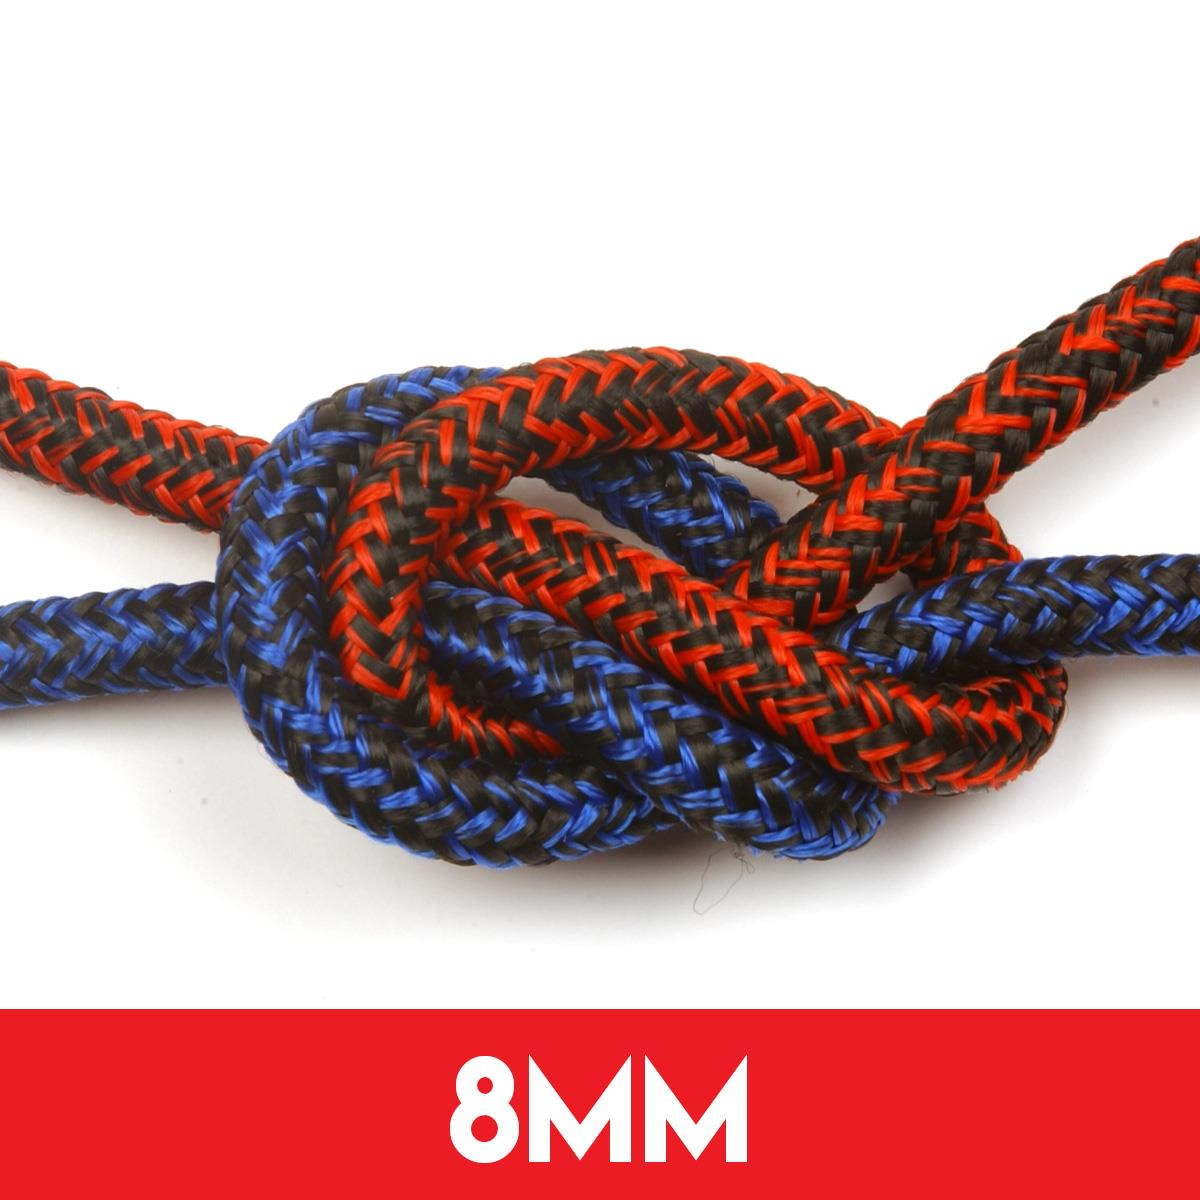 8mm Kingfisher Evo Sheet Rope